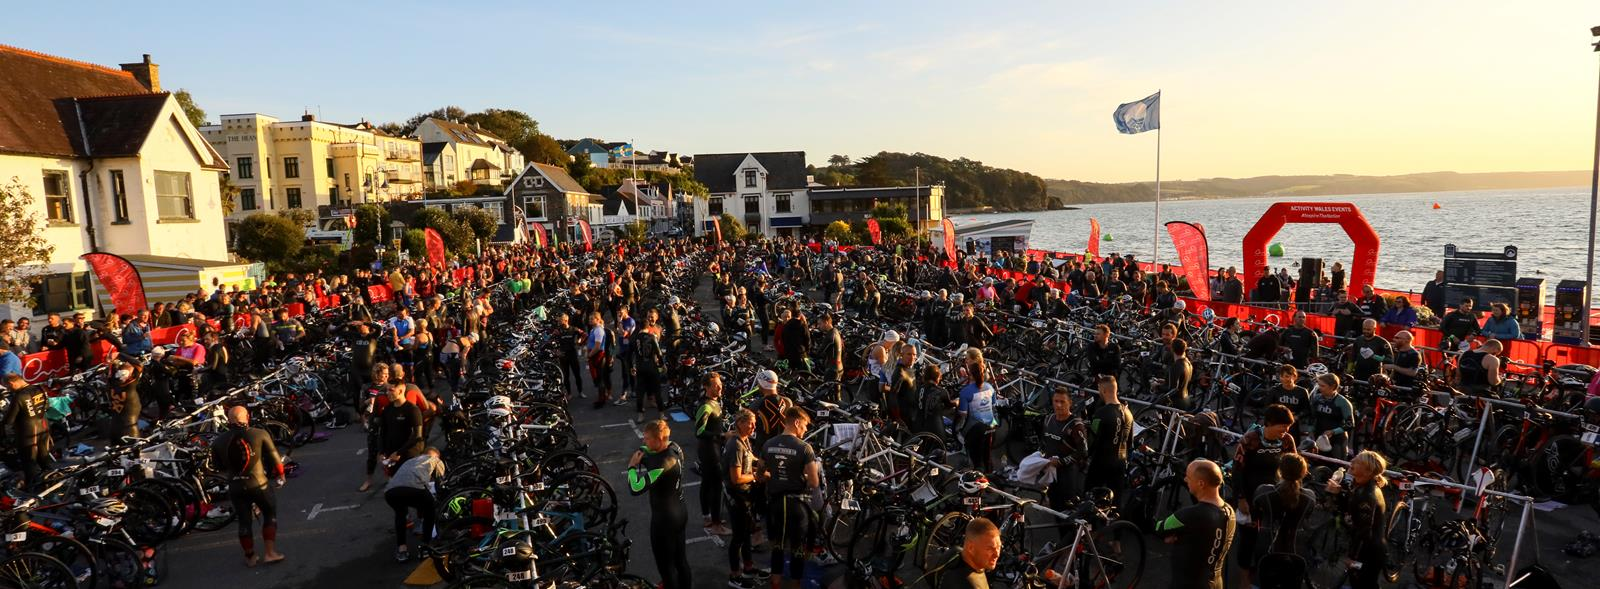 3-year partnership extension with host WICC for Saundersfoot Triathlon